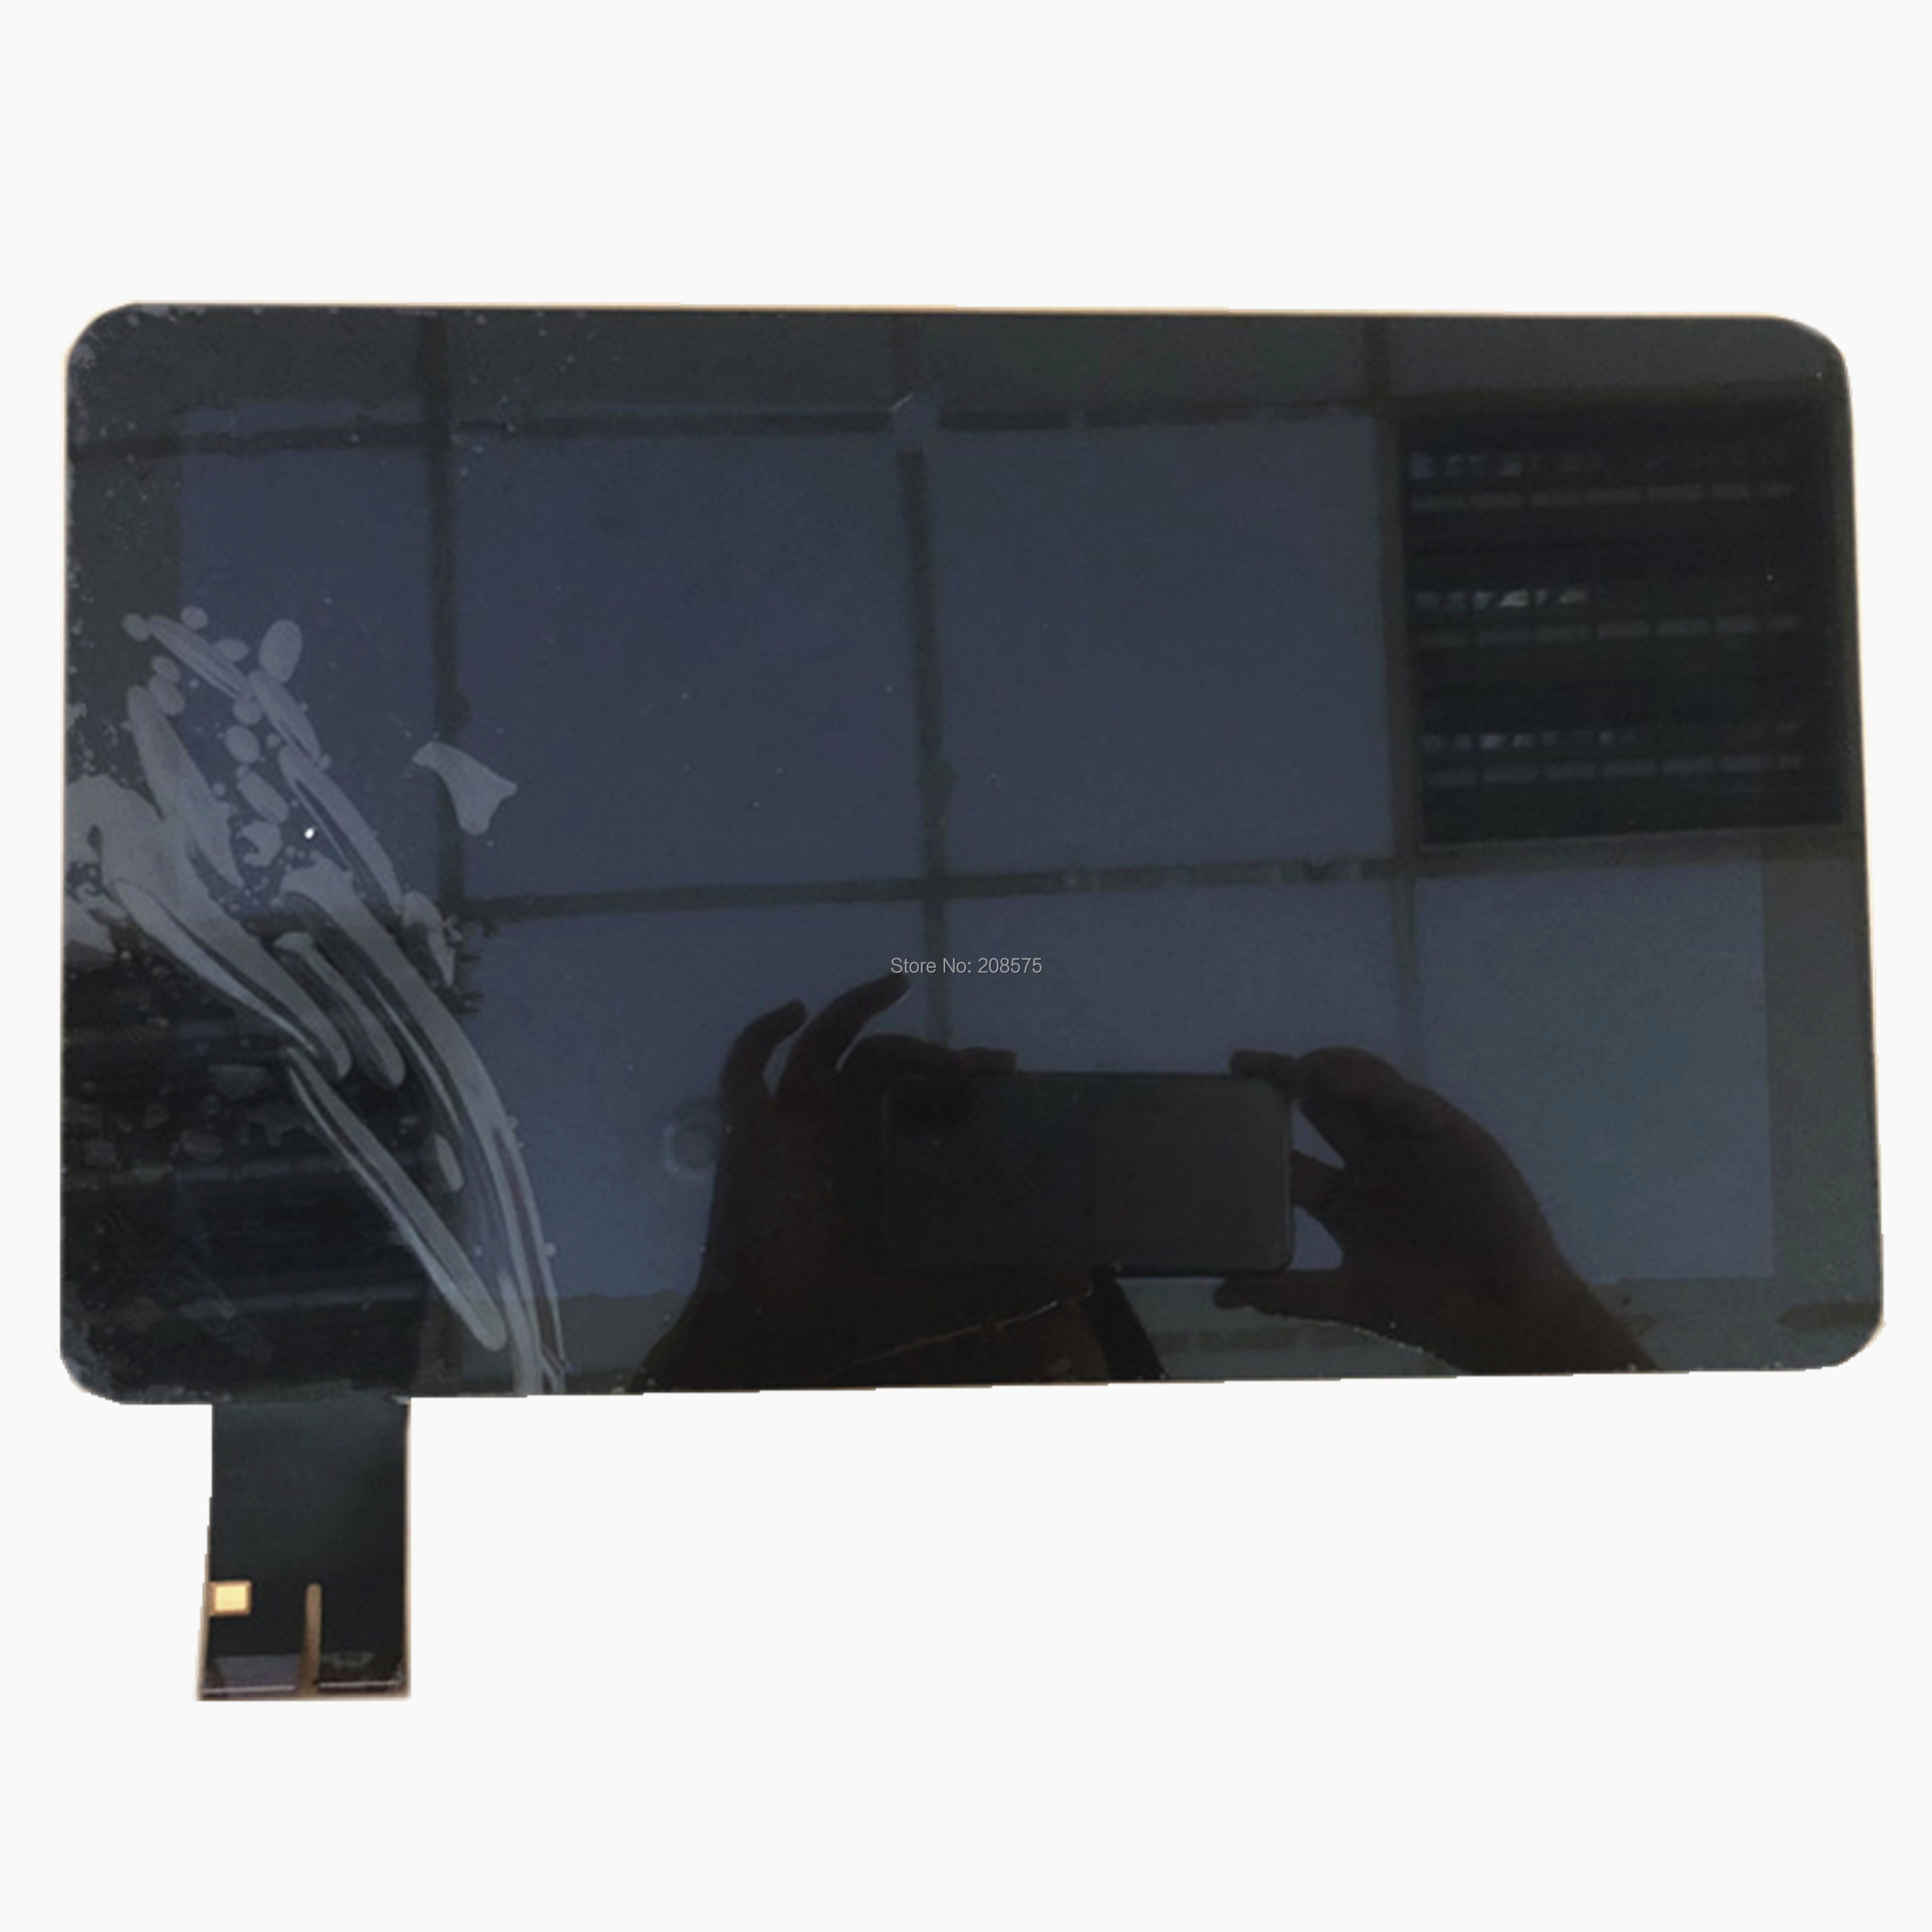 Free shipping ! 12.5 LCD LED Touch Screen Digitizer Glass Assembly For Asus T300chi T300 CHI B125HAN01.0 1920*1080 IPSFree shipping ! 12.5 LCD LED Touch Screen Digitizer Glass Assembly For Asus T300chi T300 CHI B125HAN01.0 1920*1080 IPS